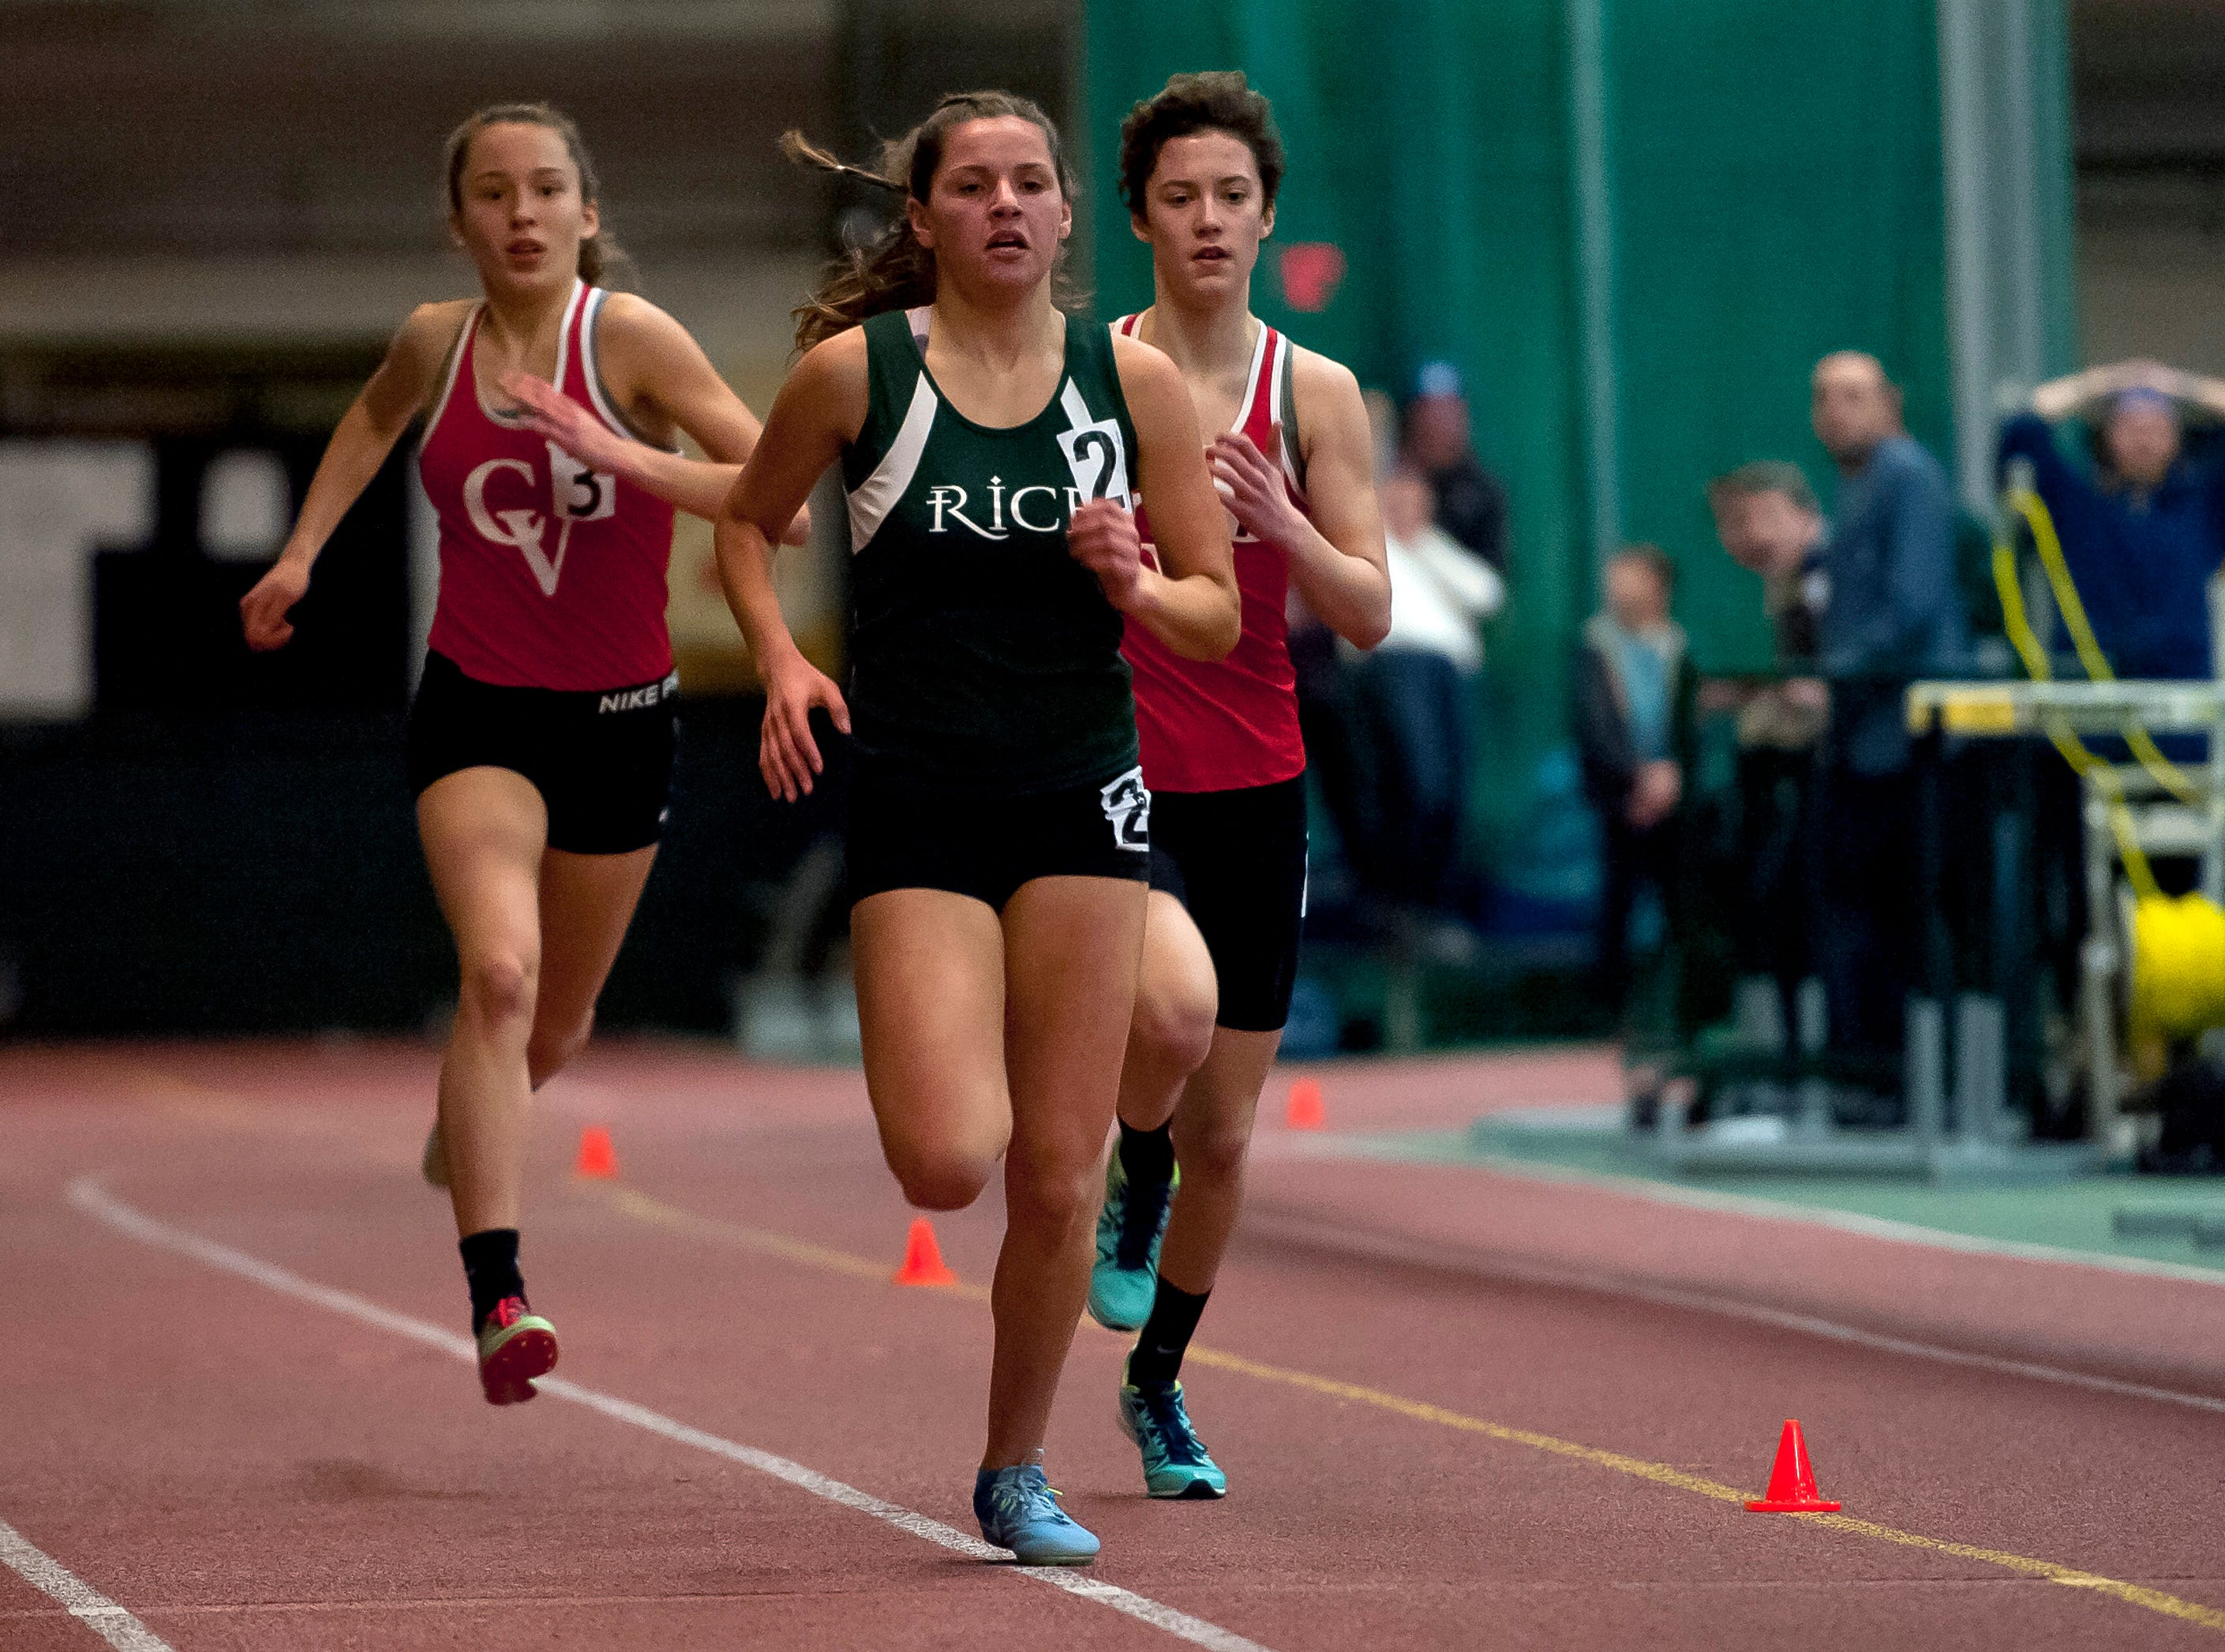 Rice's Emily Bloom, center, passes Champlain Valley's Ella Whitman and Alice Larson in the girls 1,500 meters at the high school indoor track state championships at the University of Vermont on Saturday.